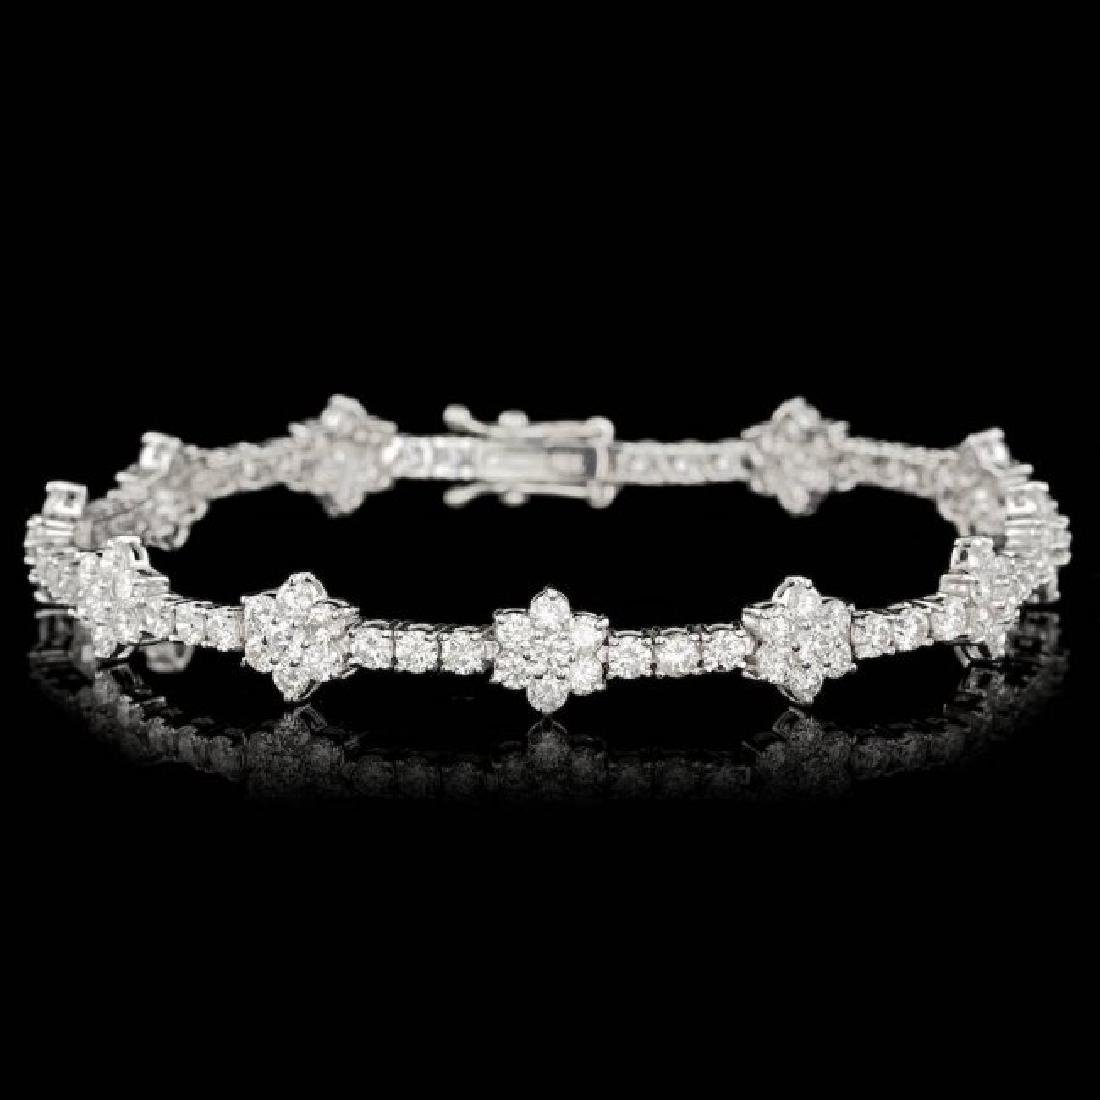 18k White Gold 6.80ct Diamond Bracelet